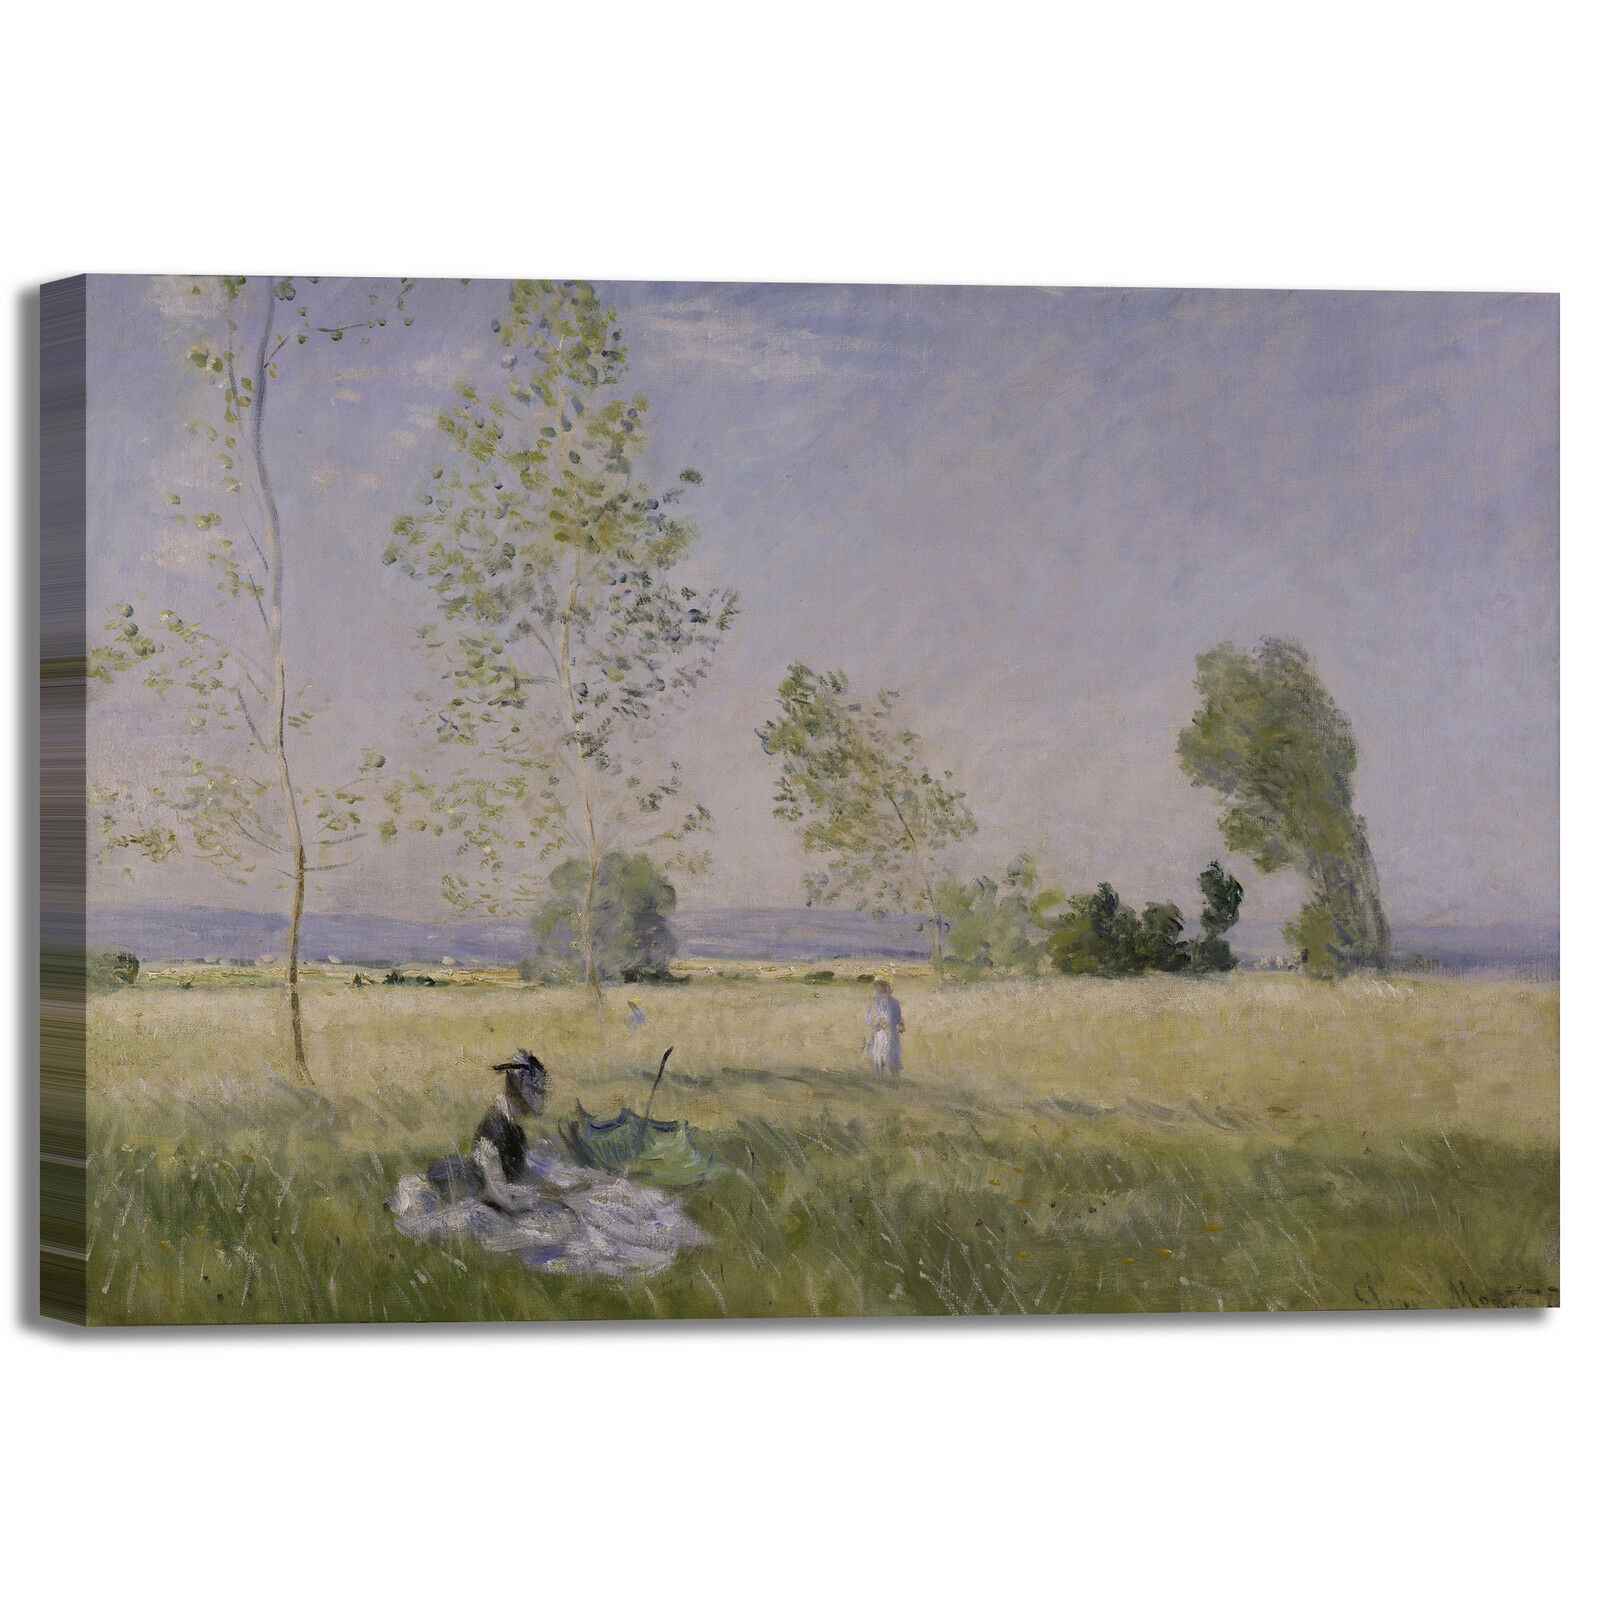 Monet estate design quadro stampa tela dipinto telaio arrossoo casa